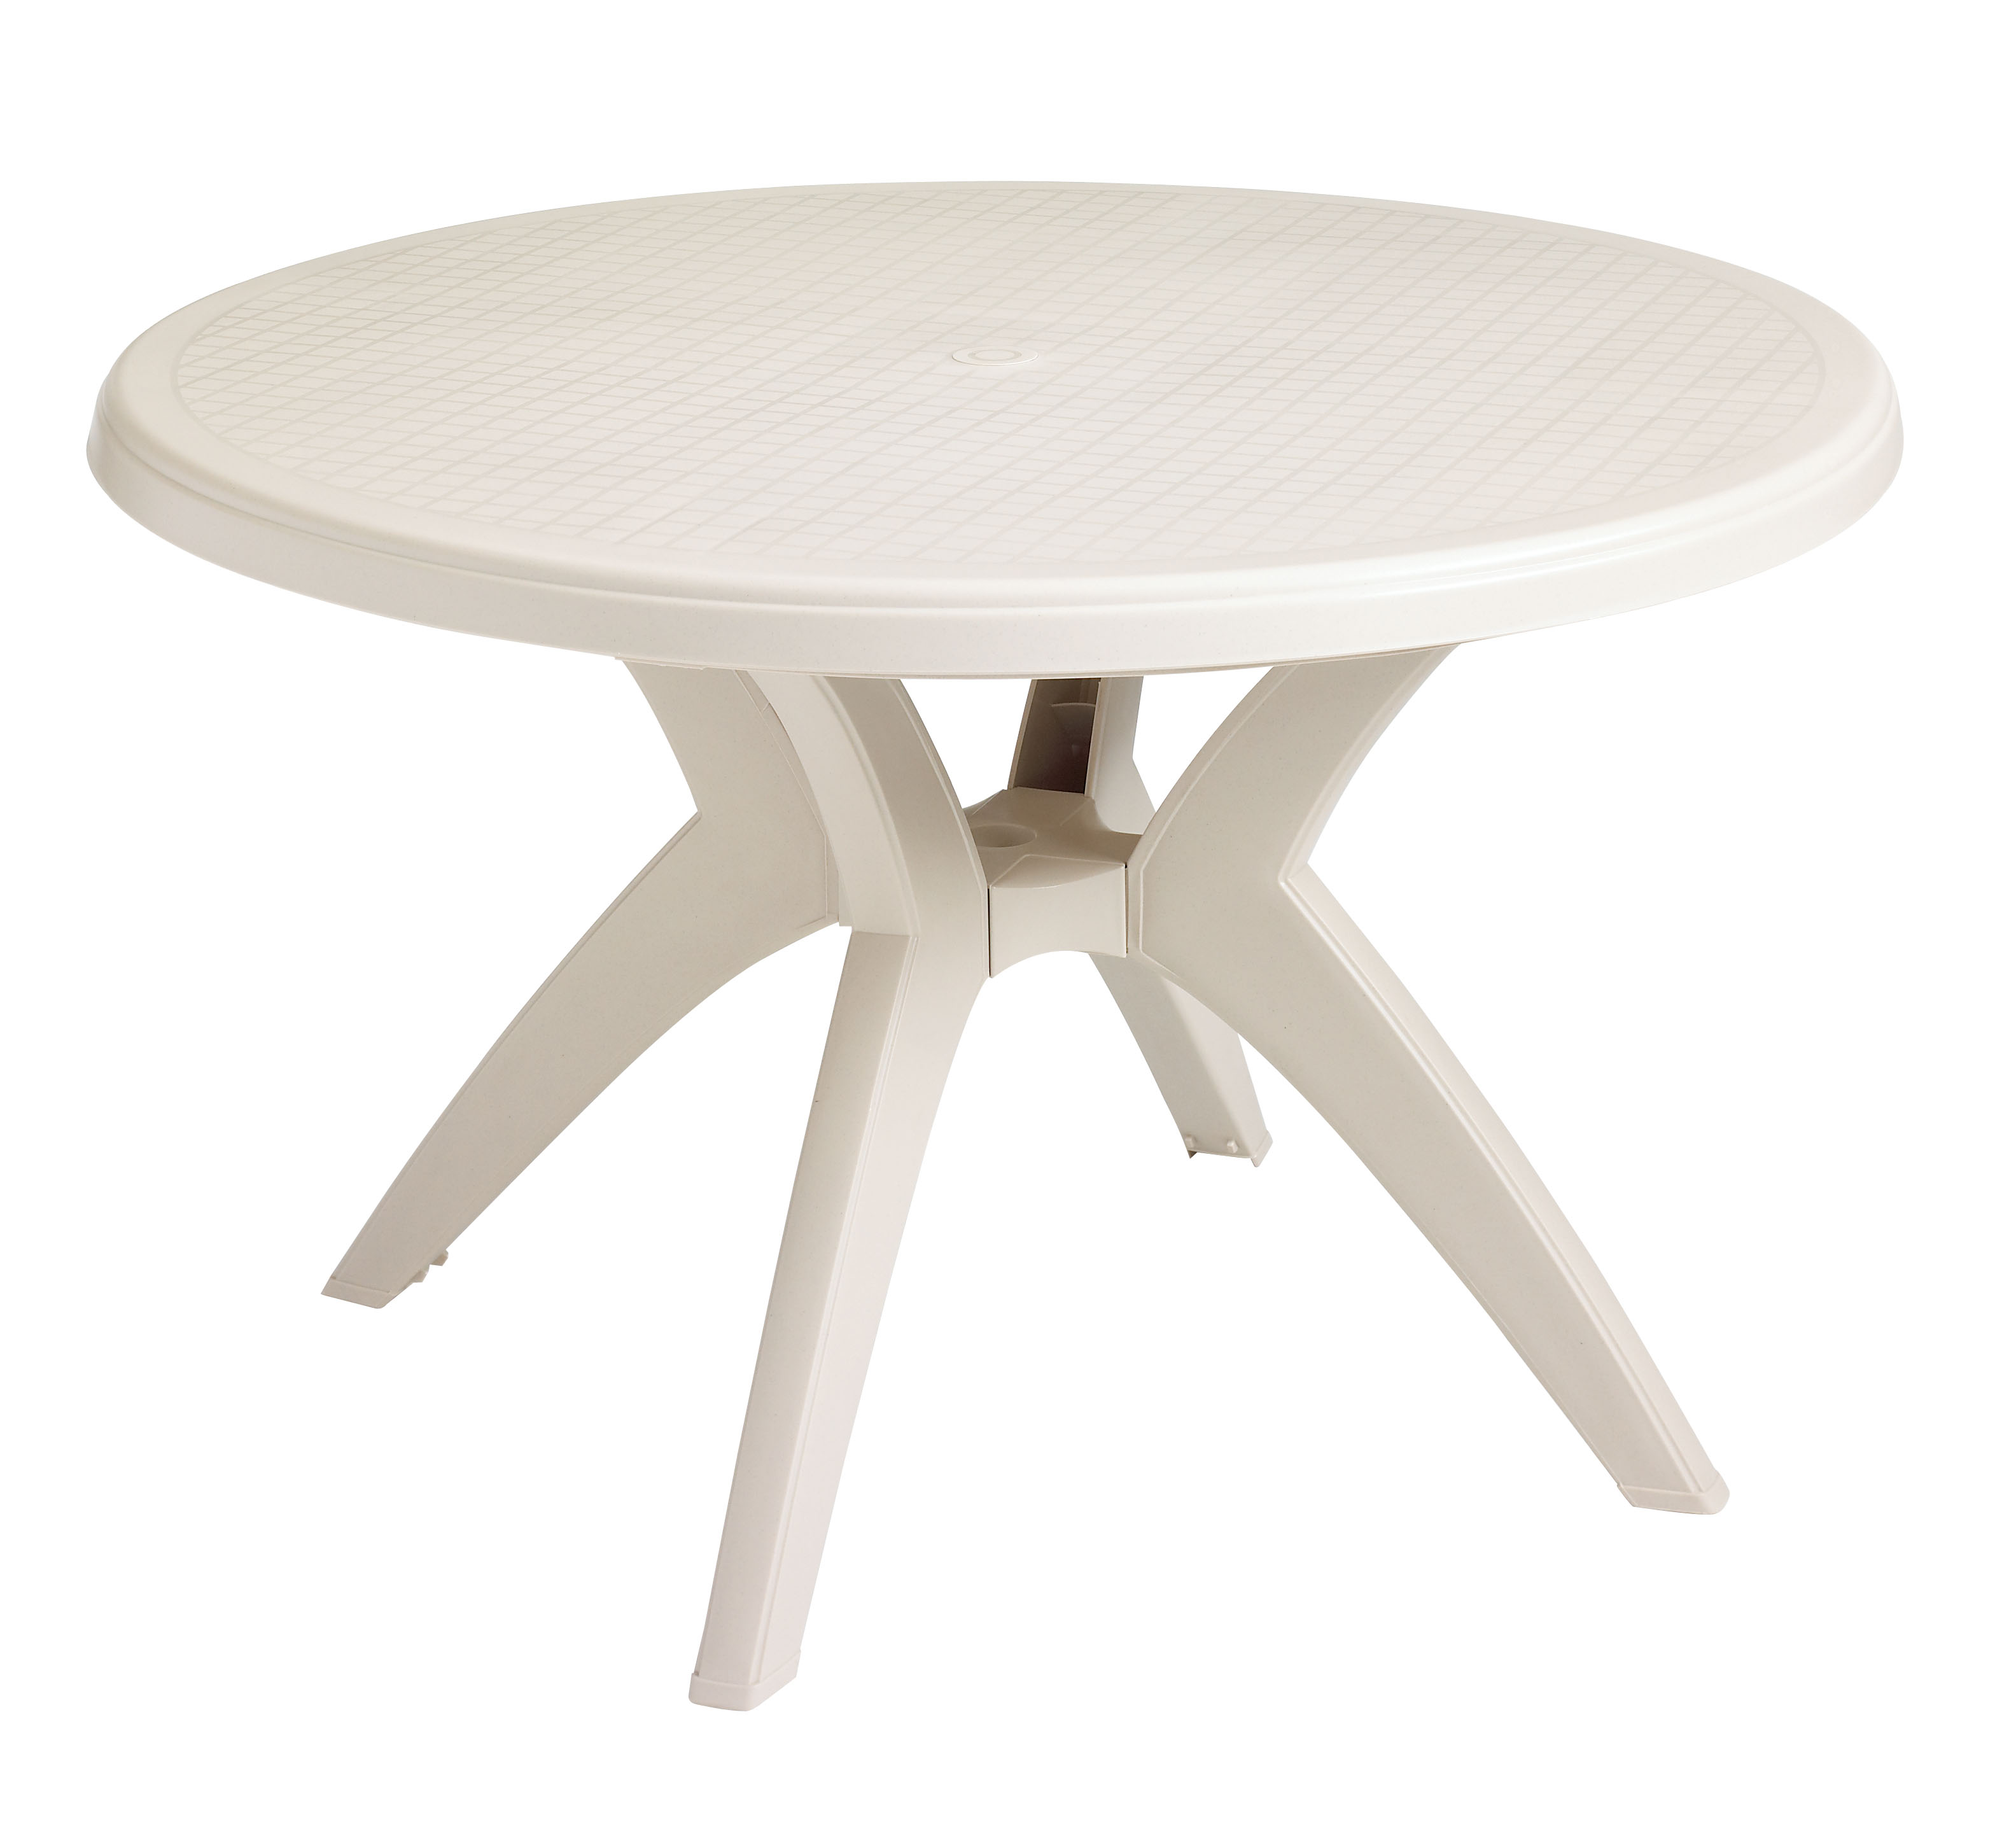 Superb US526704   Grosfillex Ibiza 46 In. Round Resin Patio Dining Table